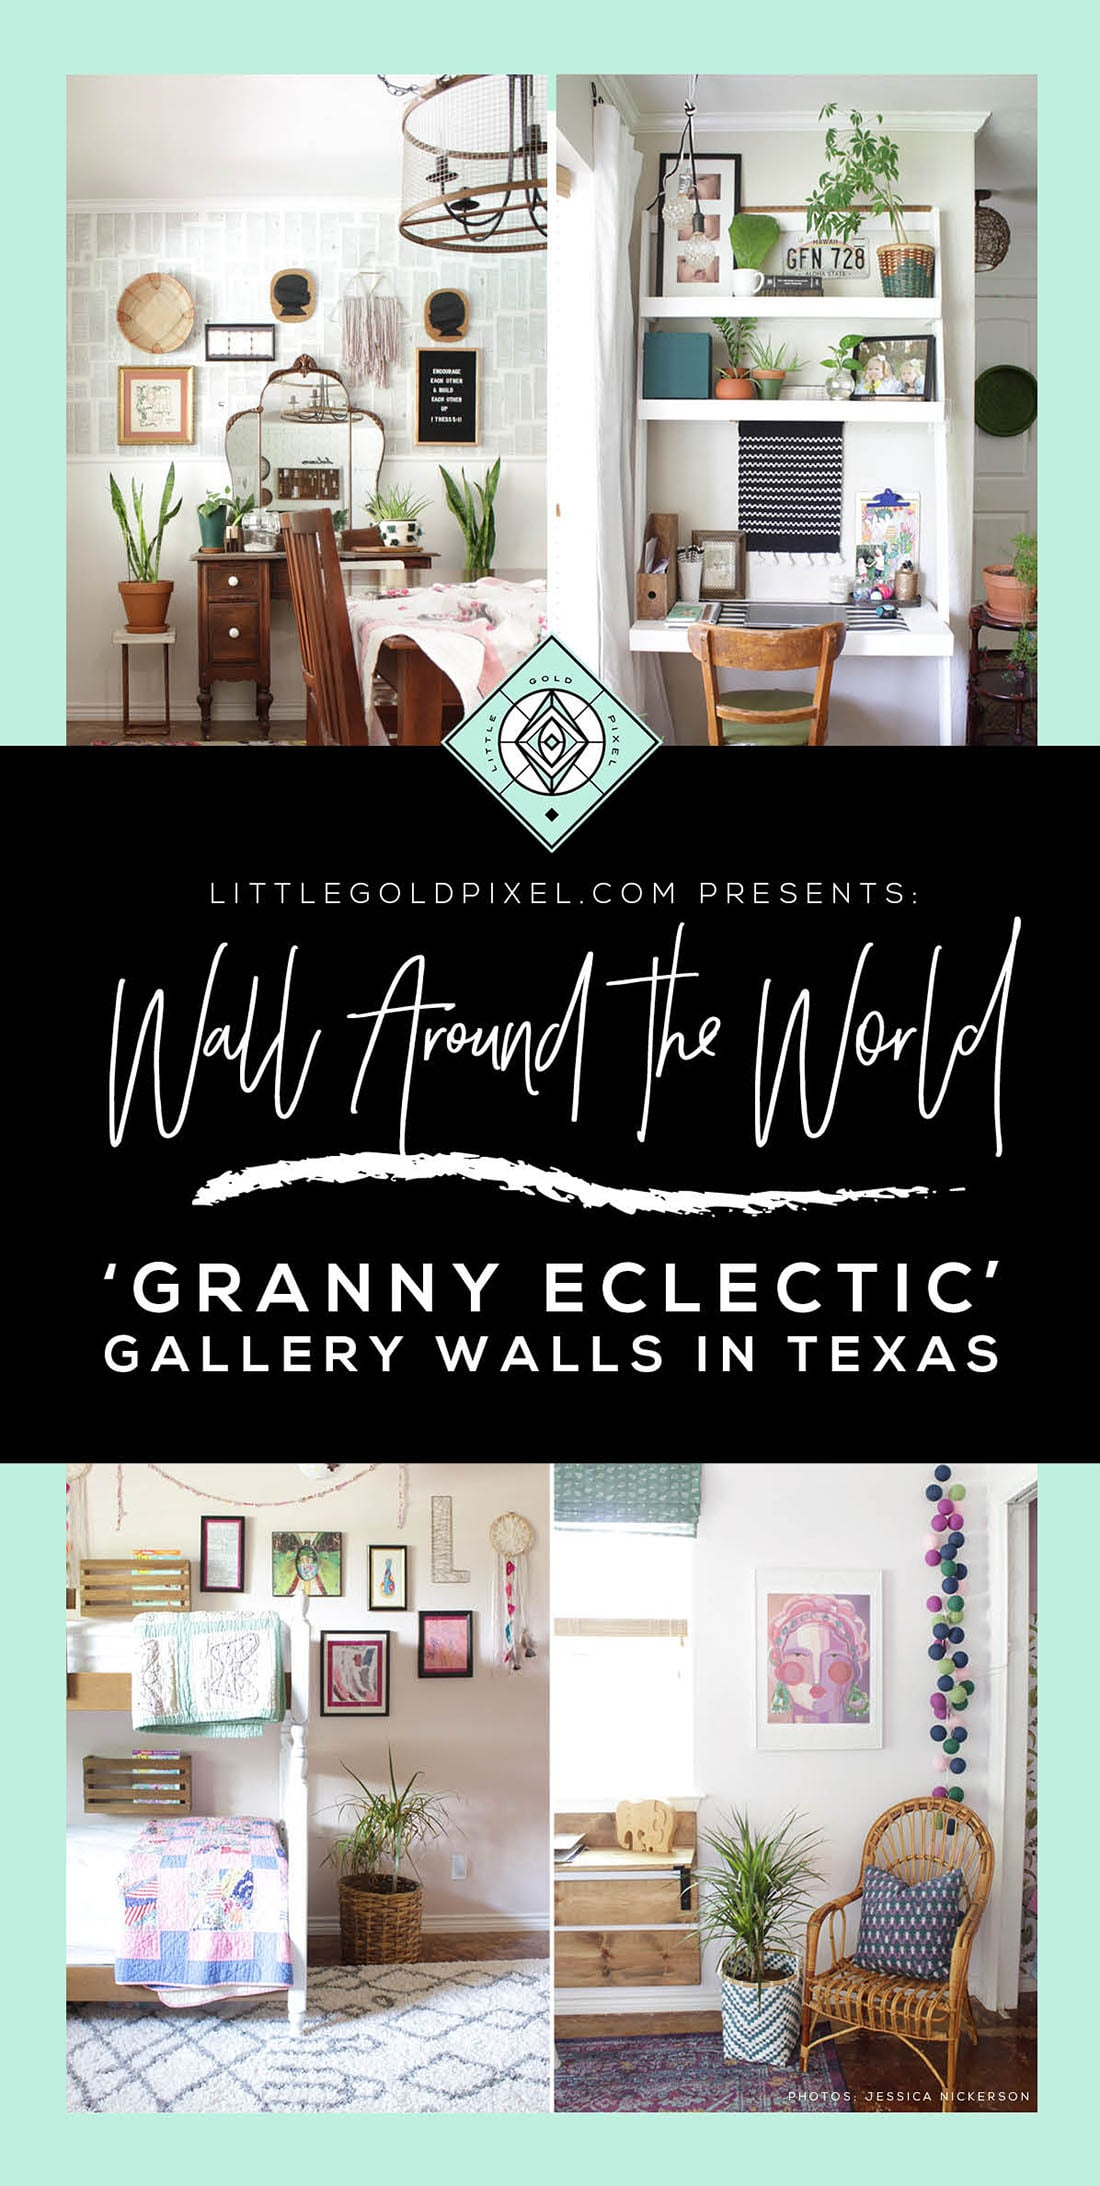 Wall Around the World: A Gallery Wall Series by Little Gold Pixel • Part 1: Granny Eclectic Gallery Walls in Texas • All photos ©Jessica Nickerson